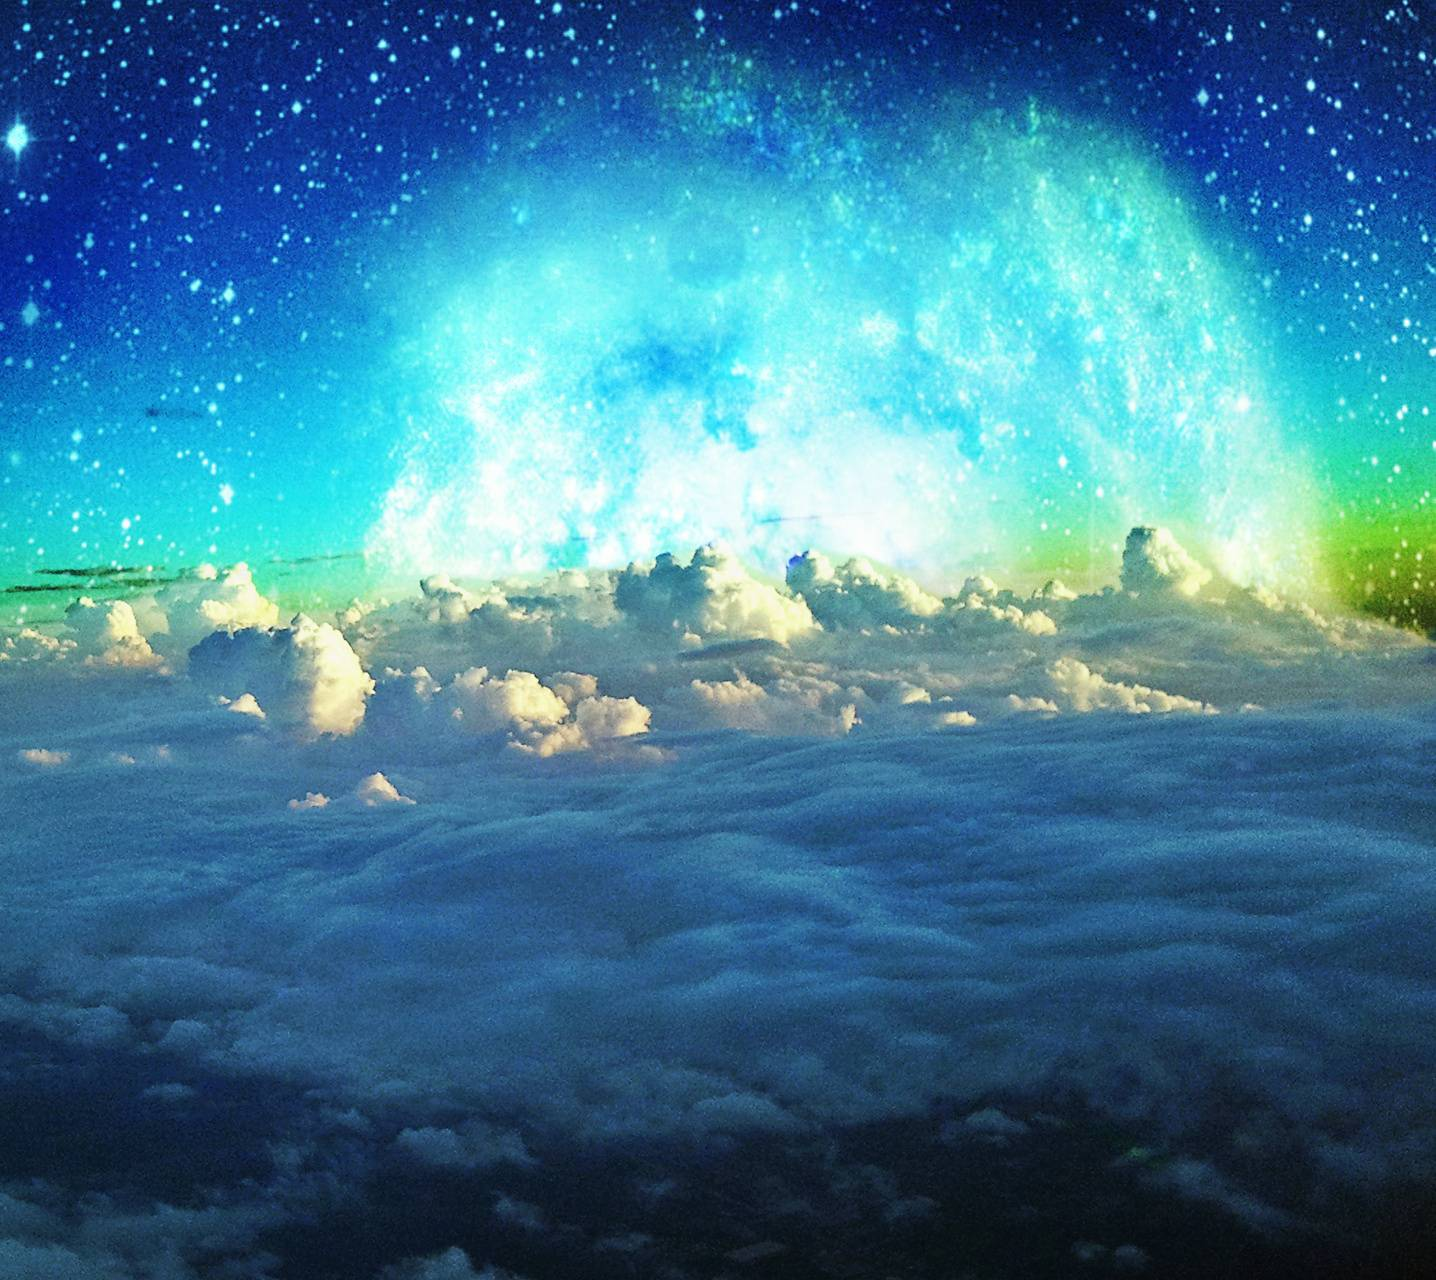 Sky and Galaxy